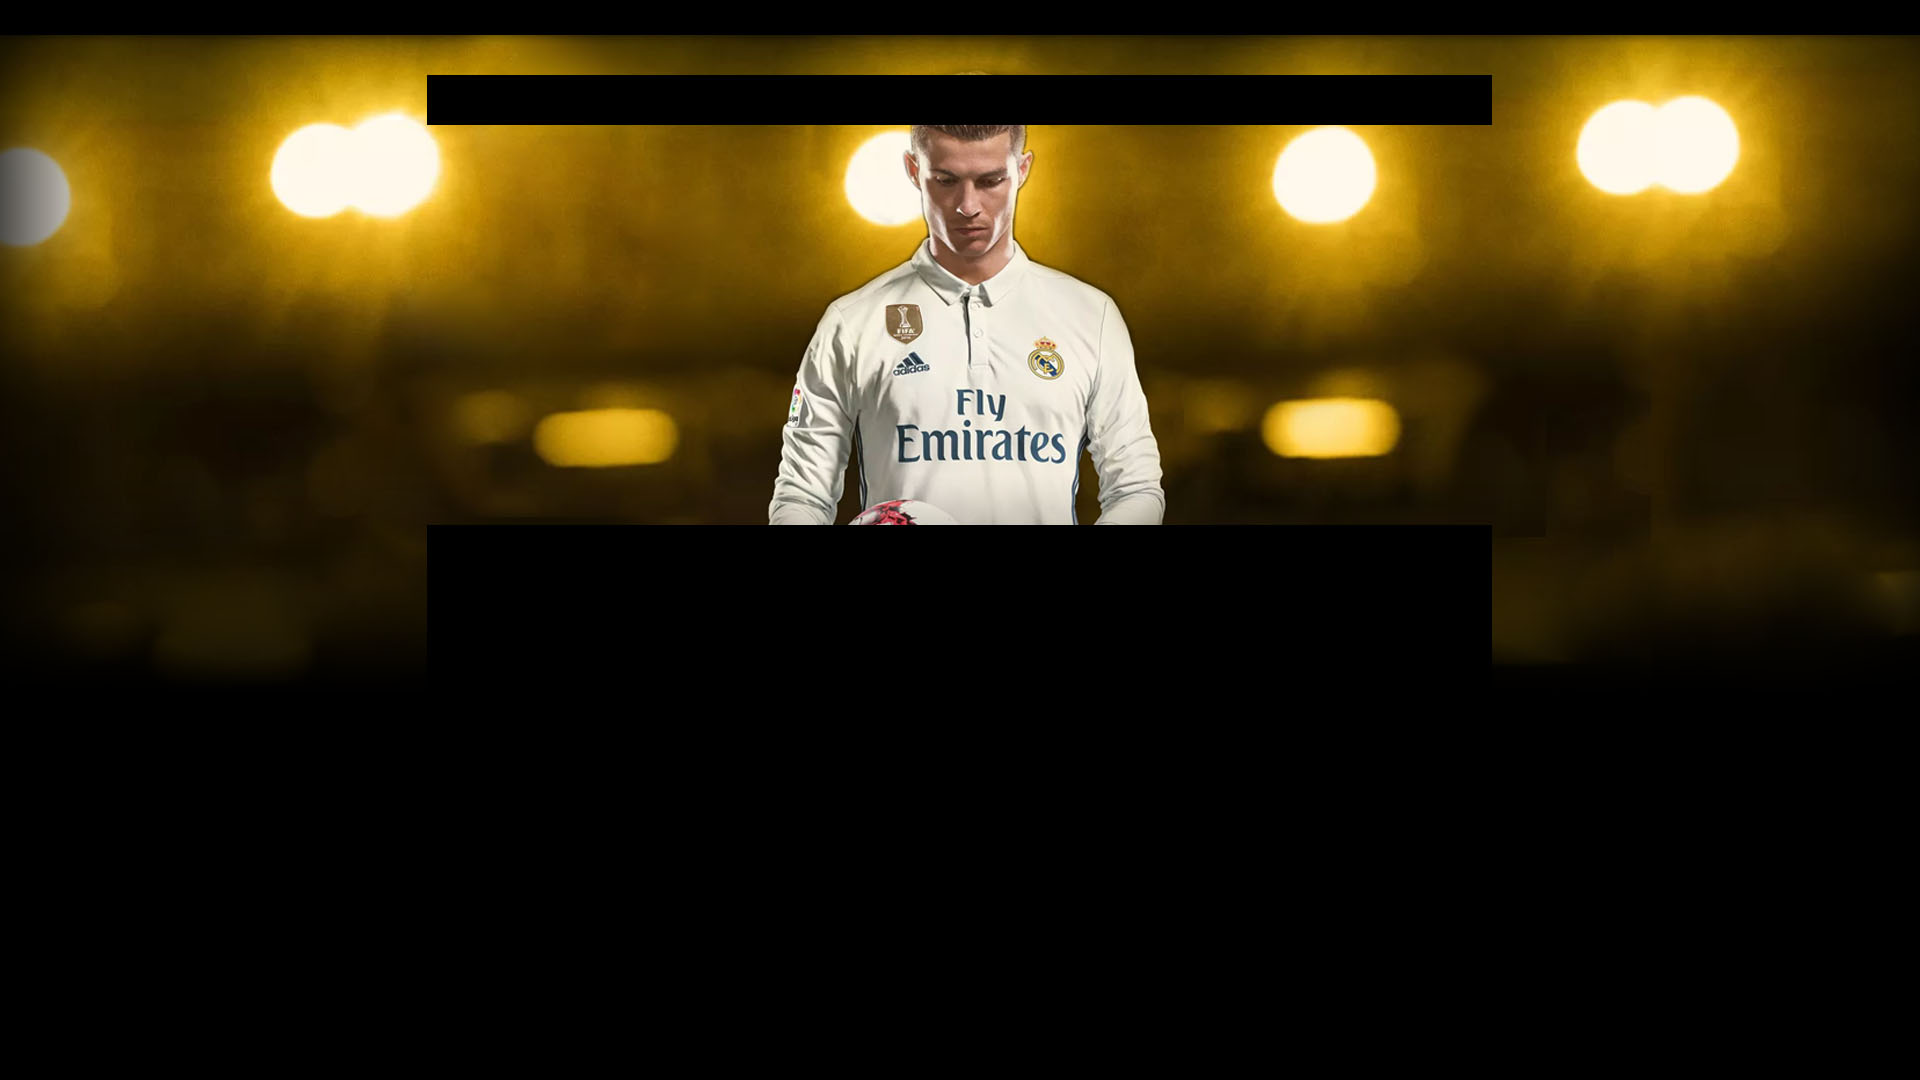 FIFA 18 [PC/PS4/Xbox One] video game